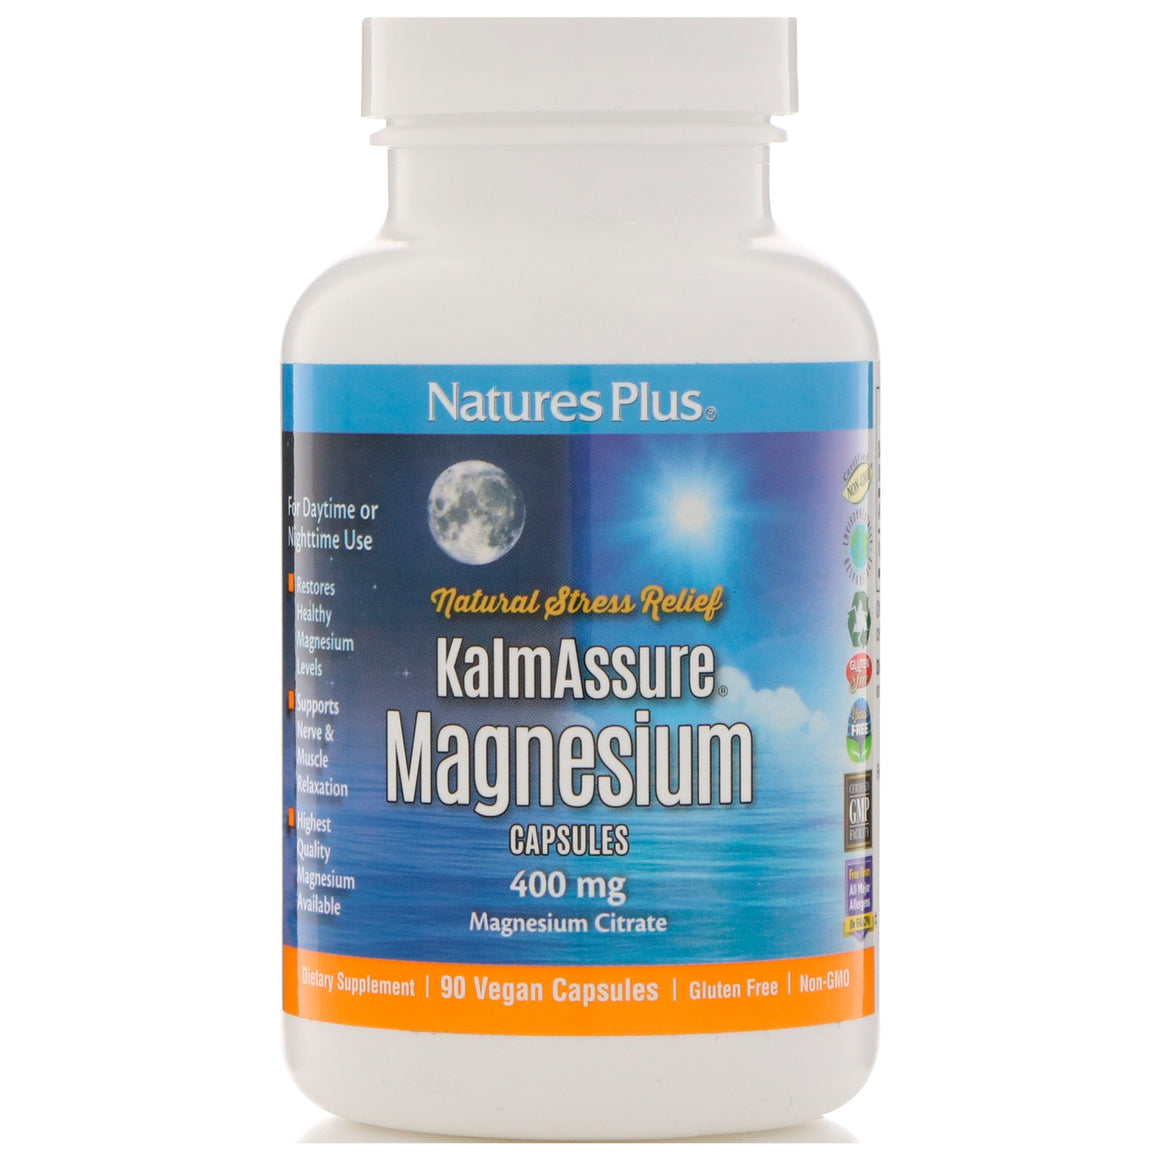 Nature's Plus Kalmassure Magnesium 400mg - 90 Vegan Capsules